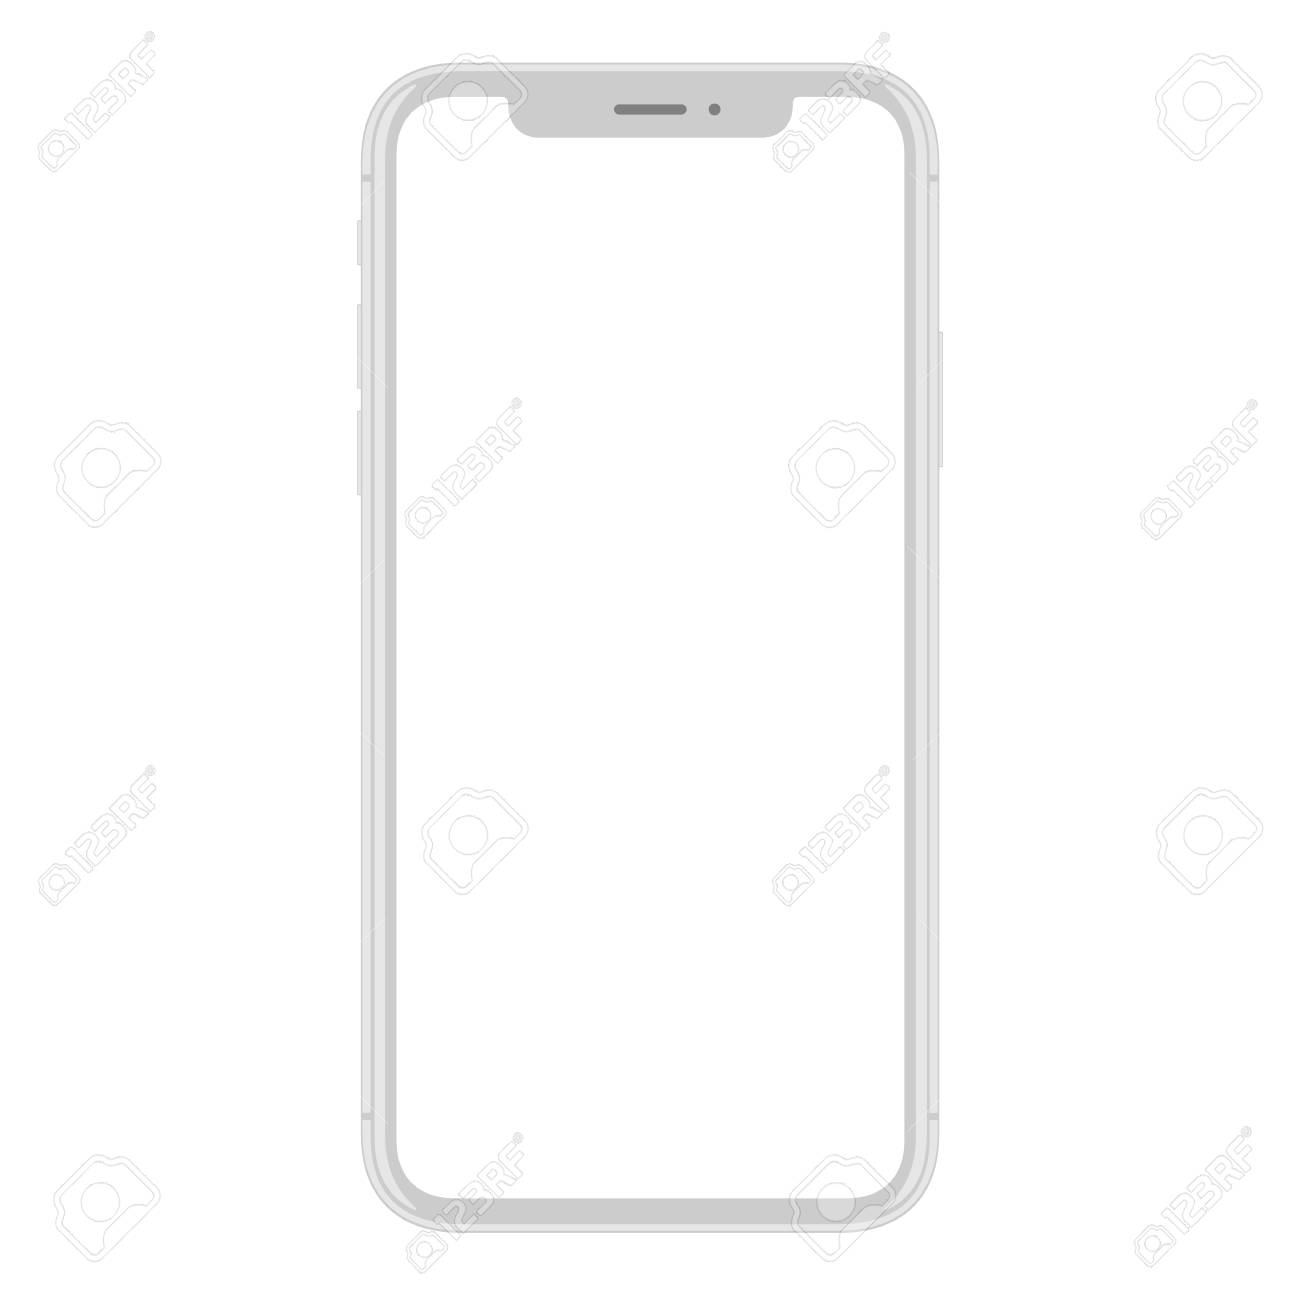 New smart phone mobile vector drawing on white background - 90453155